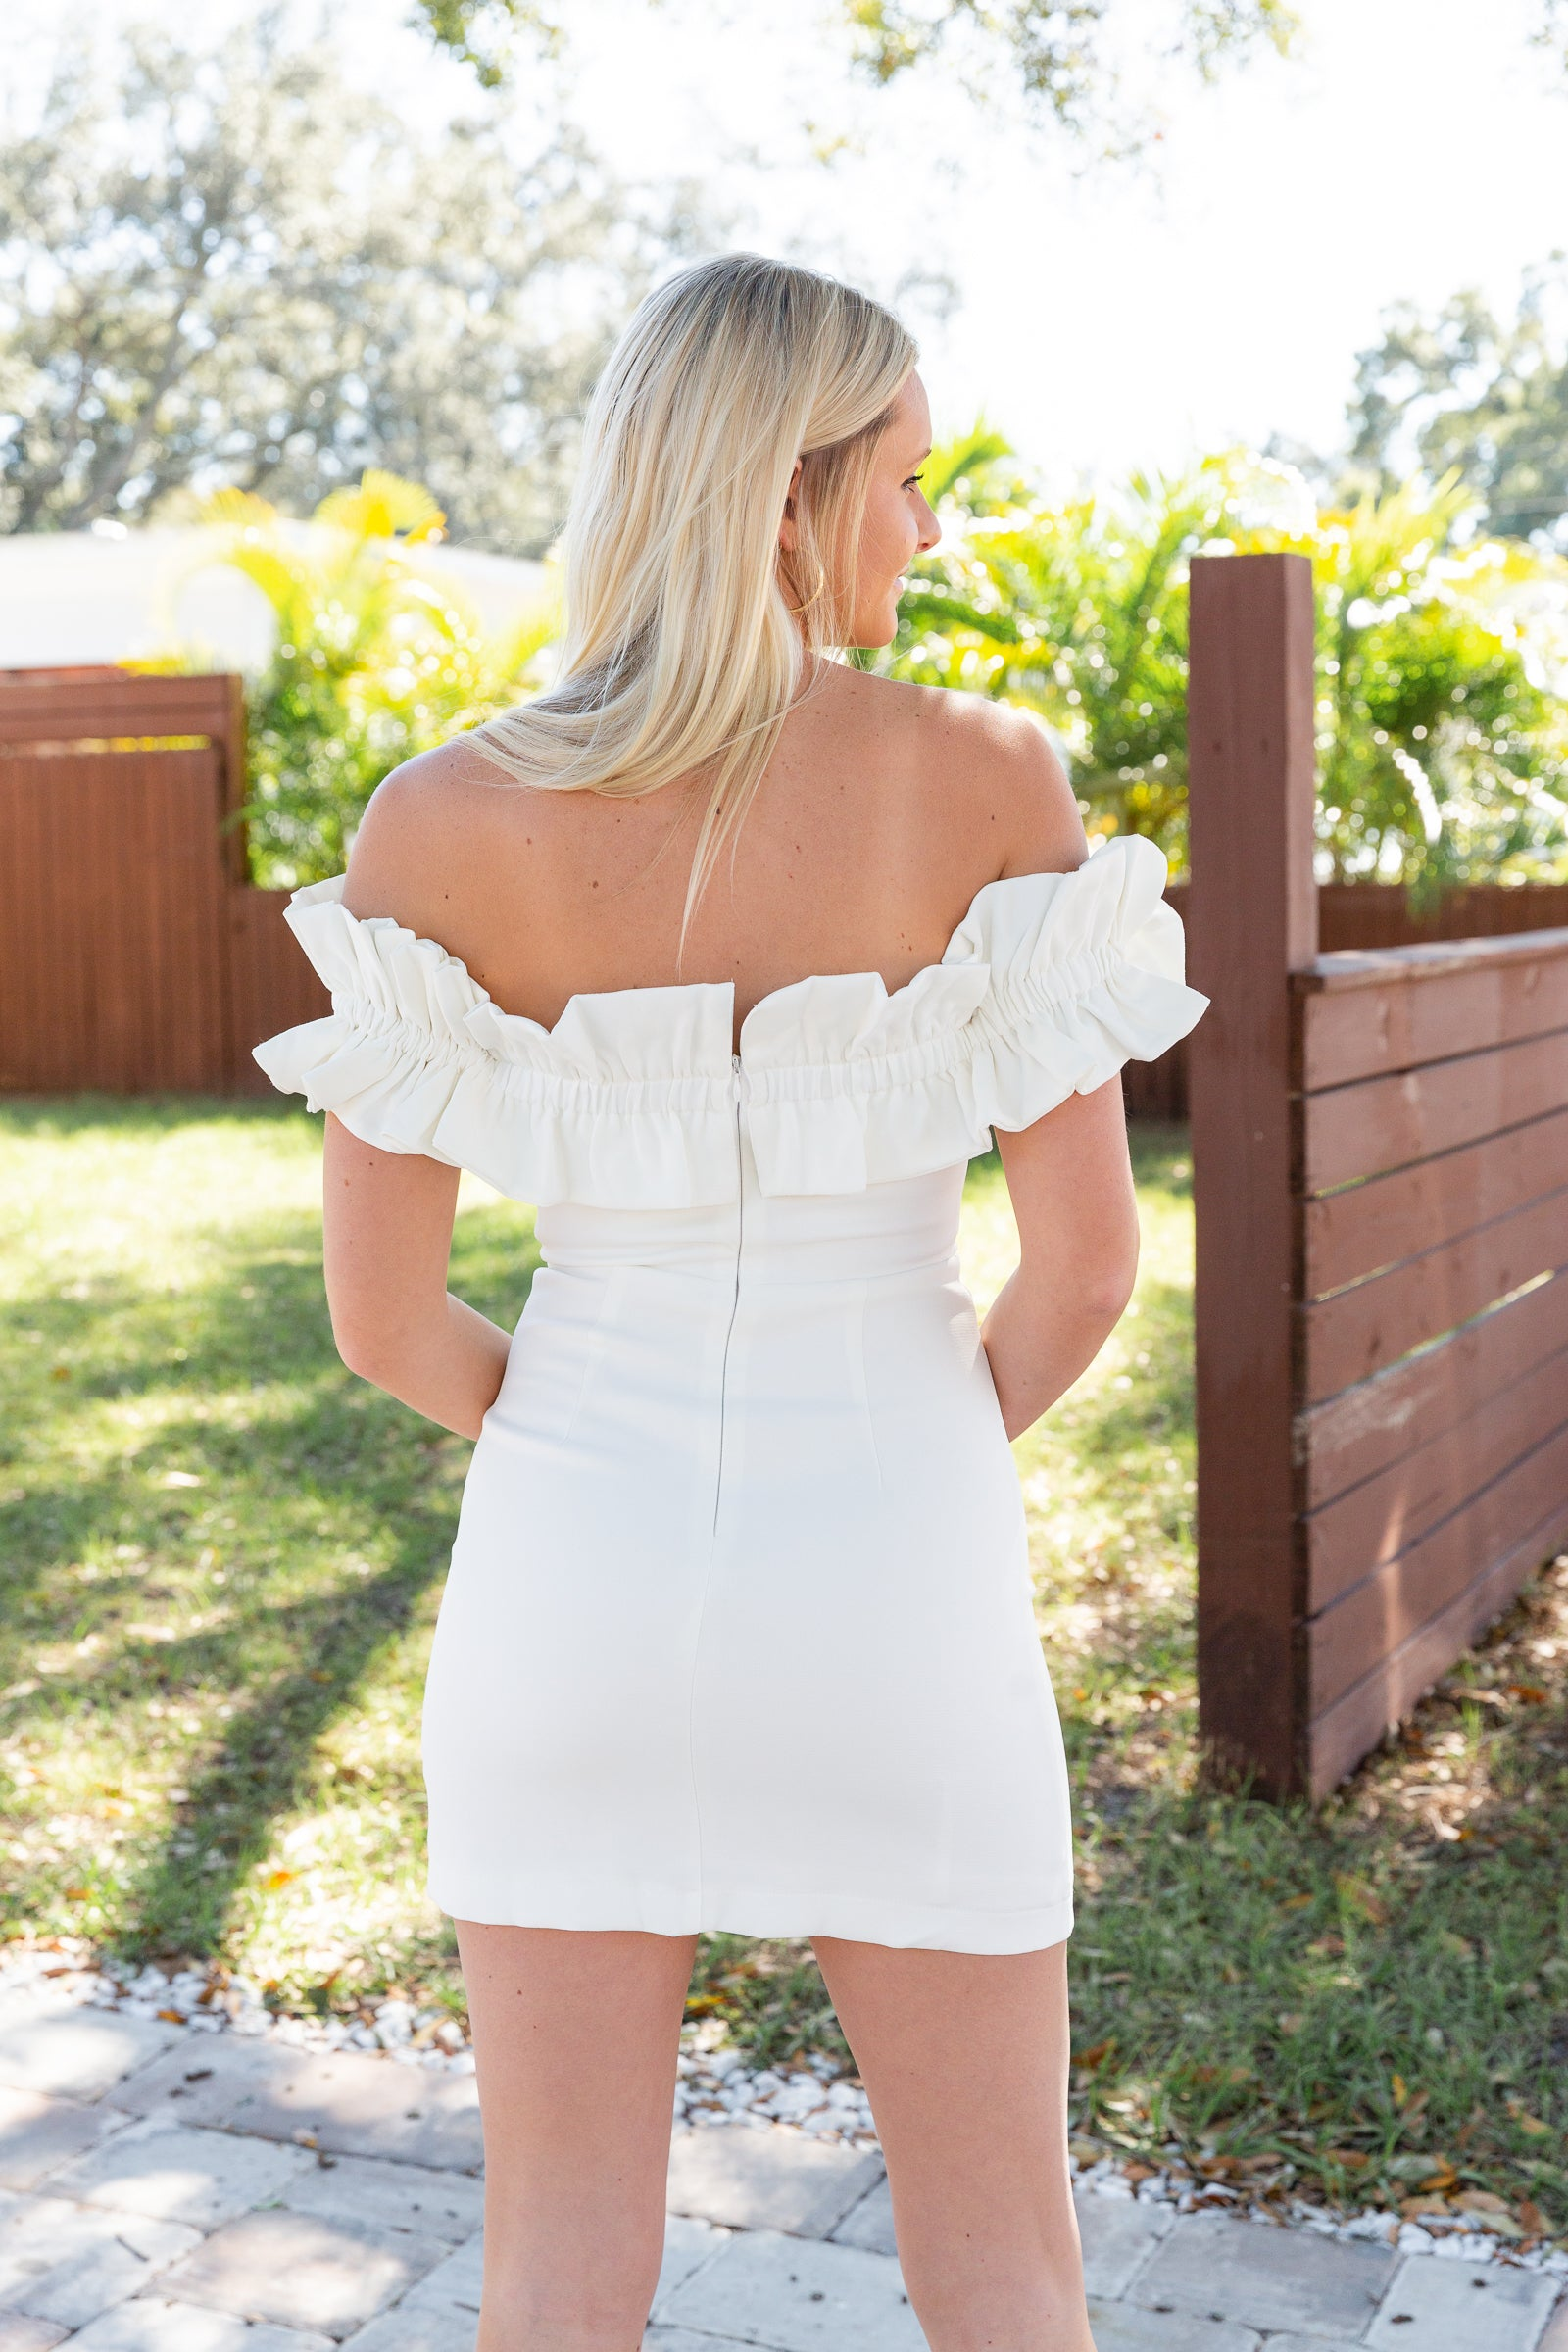 This chic white dress has short off-the-shoulder sleeves that attach onto a straight neckline on a fitted and darted bodice leading to a fitted waistband and leading into a short a-line mini skirt.